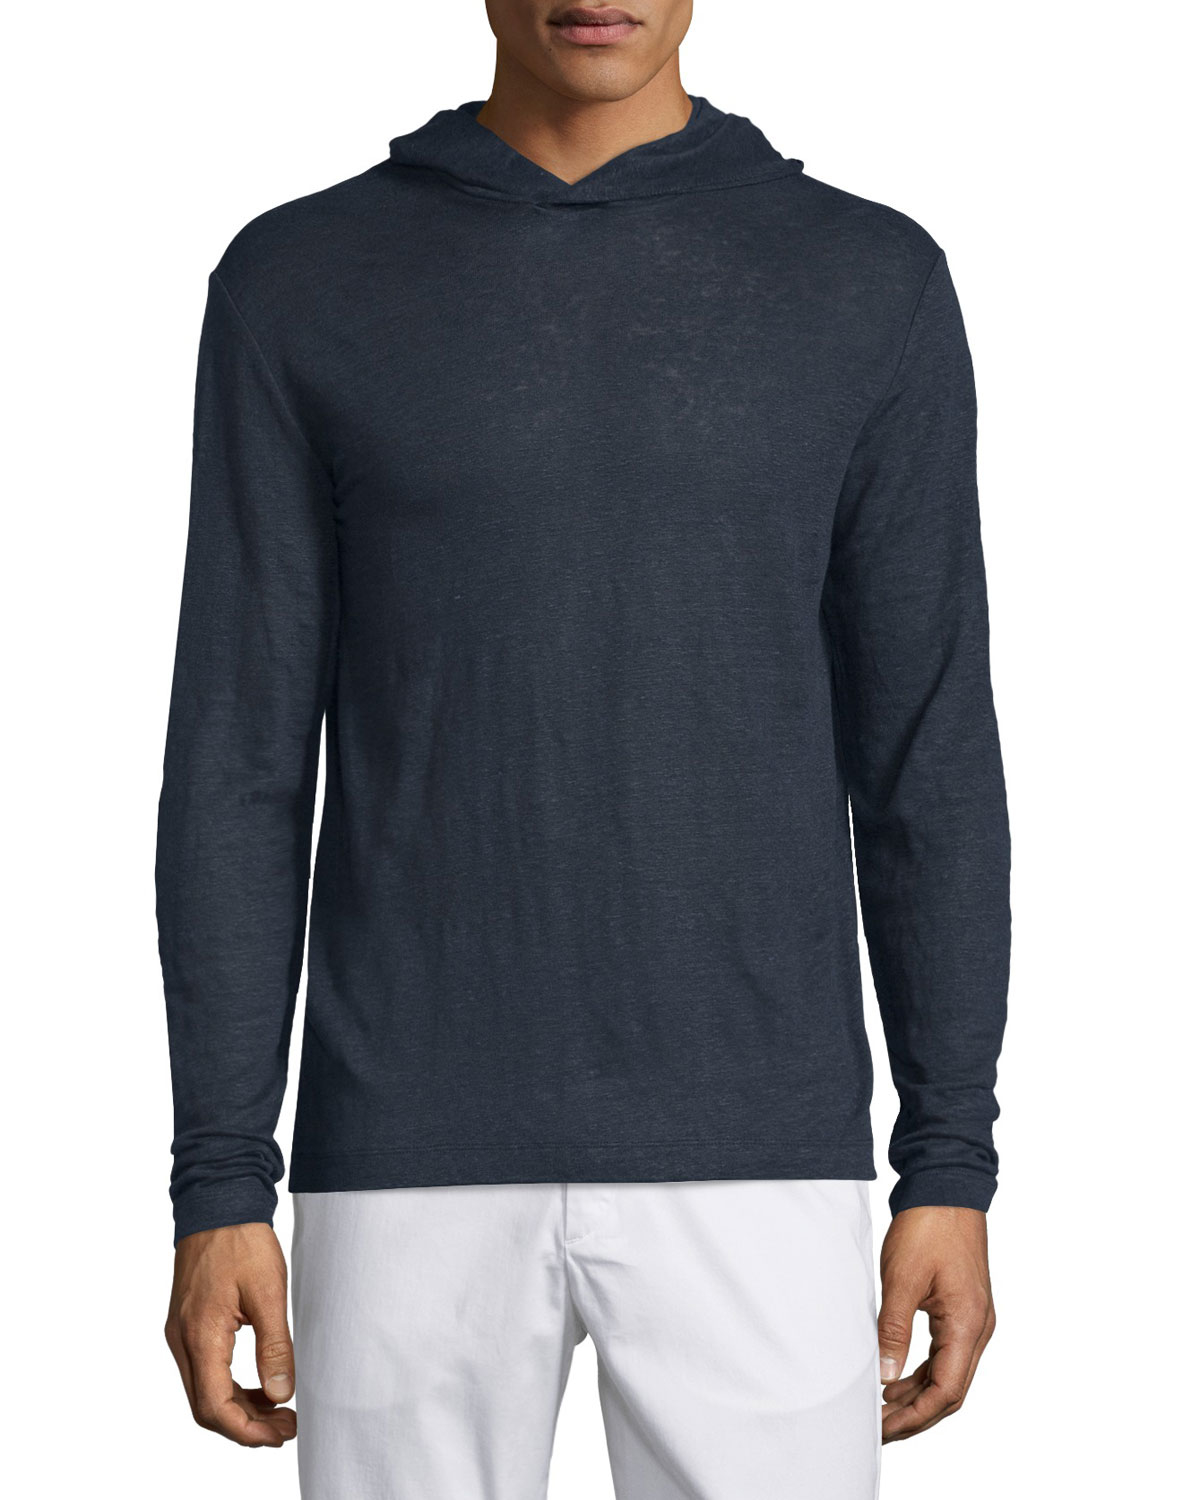 Find men's hooded long sleeve shirt at ShopStyle. Shop the latest collection of men's hooded long sleeve shirt from the most popular stores - all in. Vimmia Men's Alpha Long-Sleeve Hooded T-Shirt $85 $ Get a Sale Alert at Italist Balmain Long Sleeves Tee With.